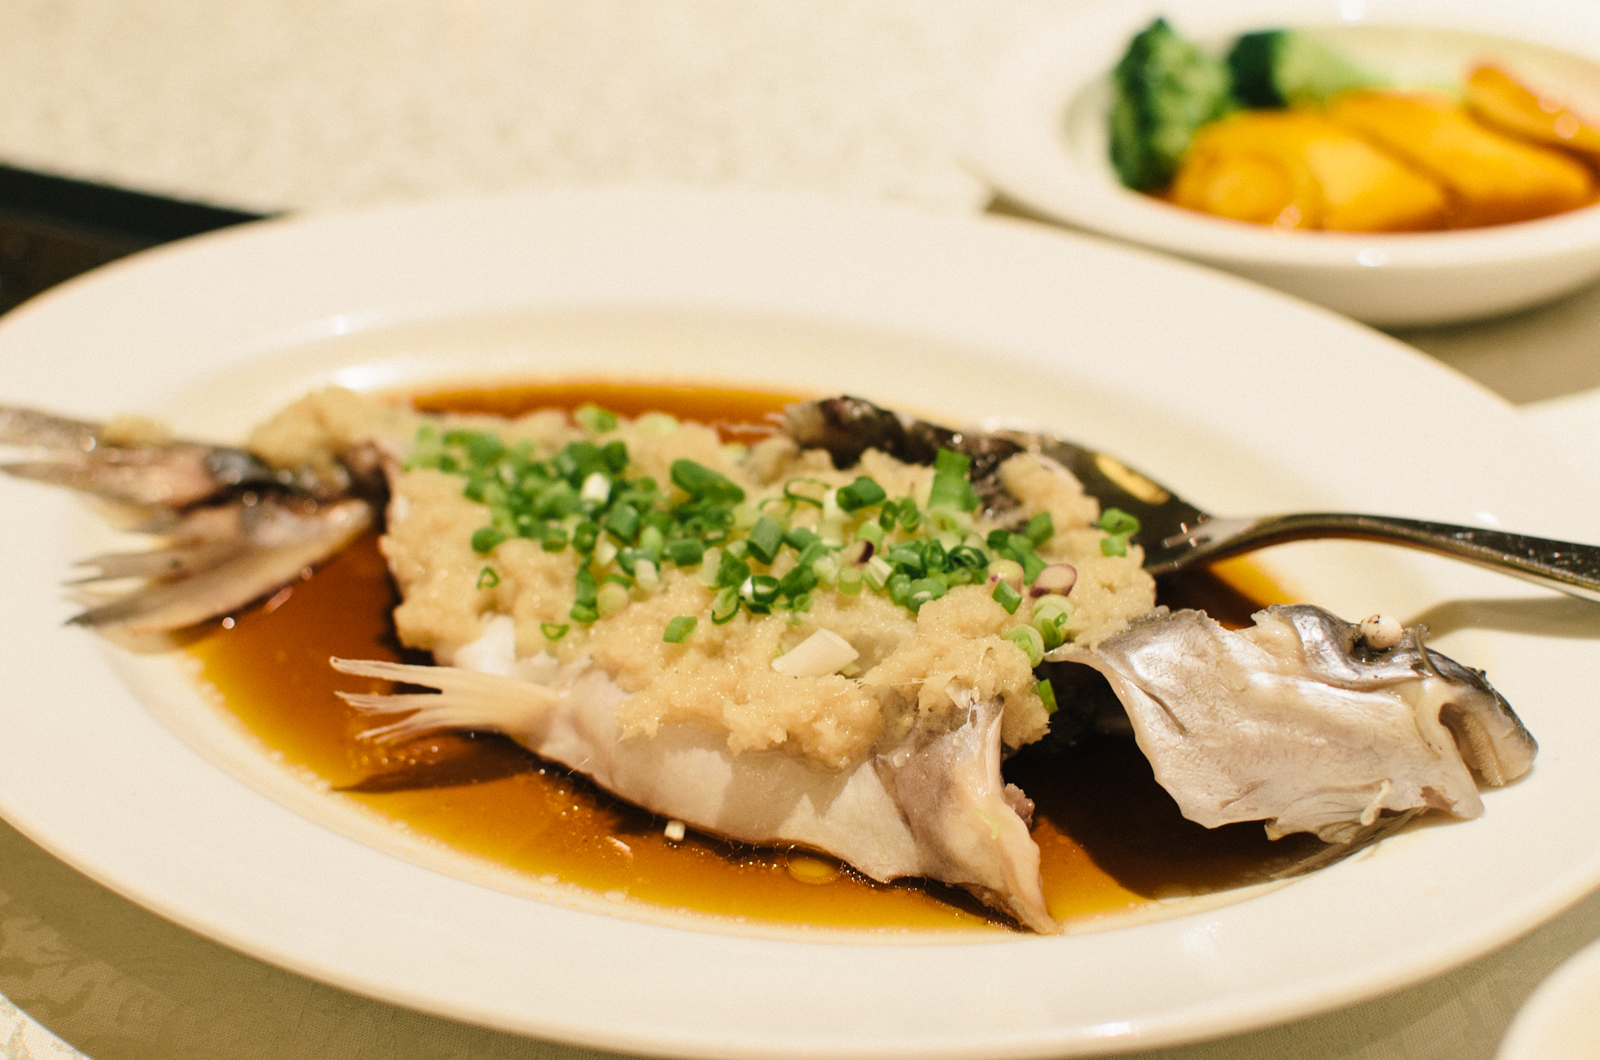 Steamed Freshwater Cat Fish with Minced Ginger (姜茸蒸水果鱼)